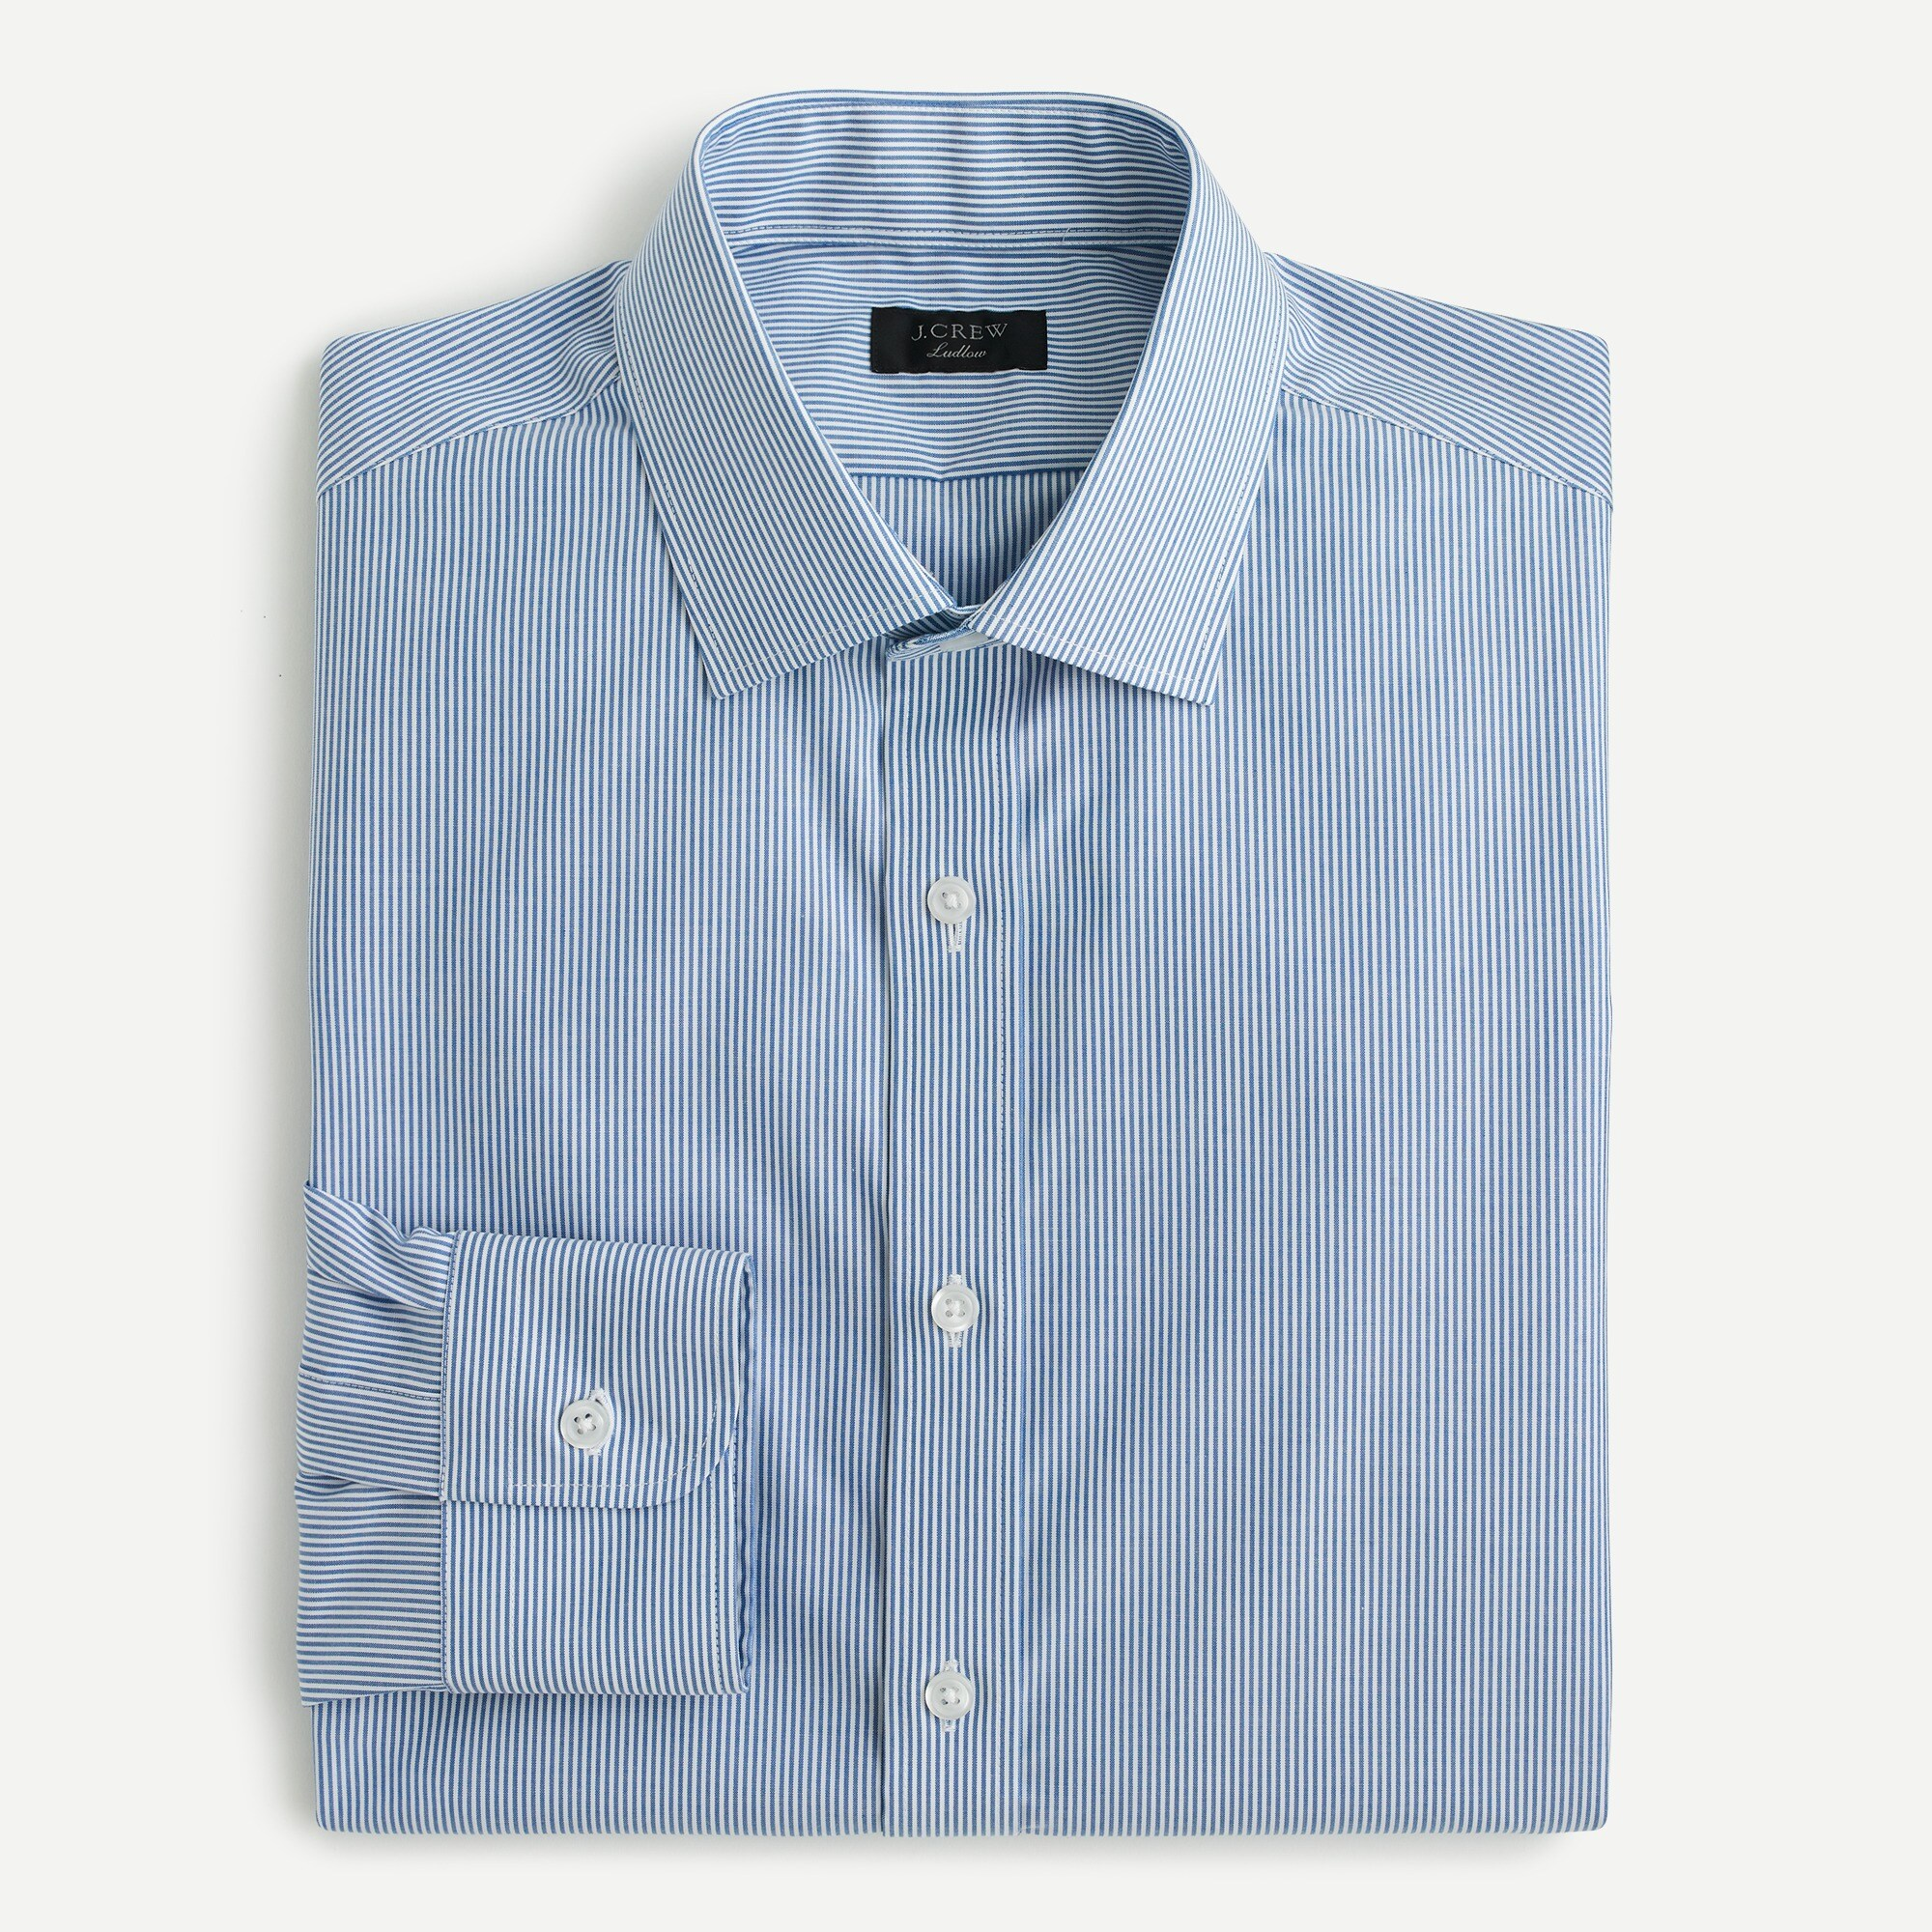 mens Ludlow Slim-fit stretch two-ply easy-care cotton dress shirt in blue microstripe